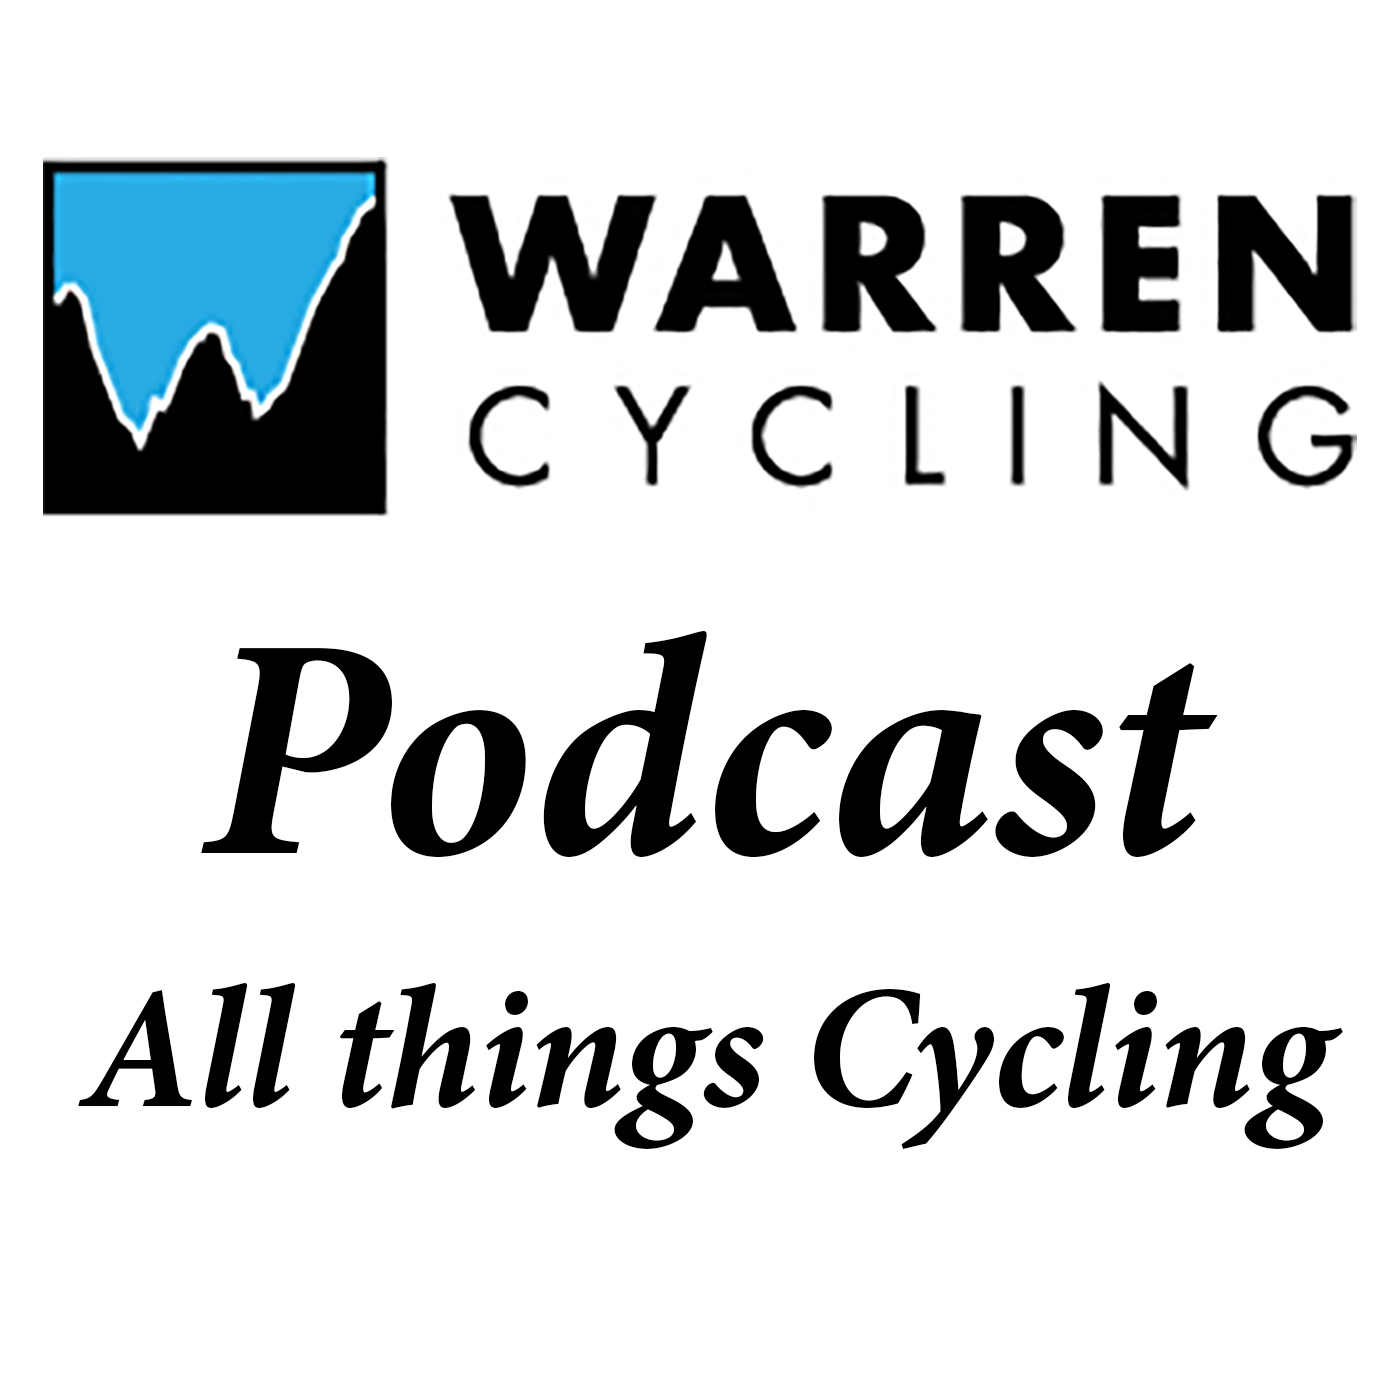 Warren Cycling Podcast Episode 249: Giro d'Italia Preview show art